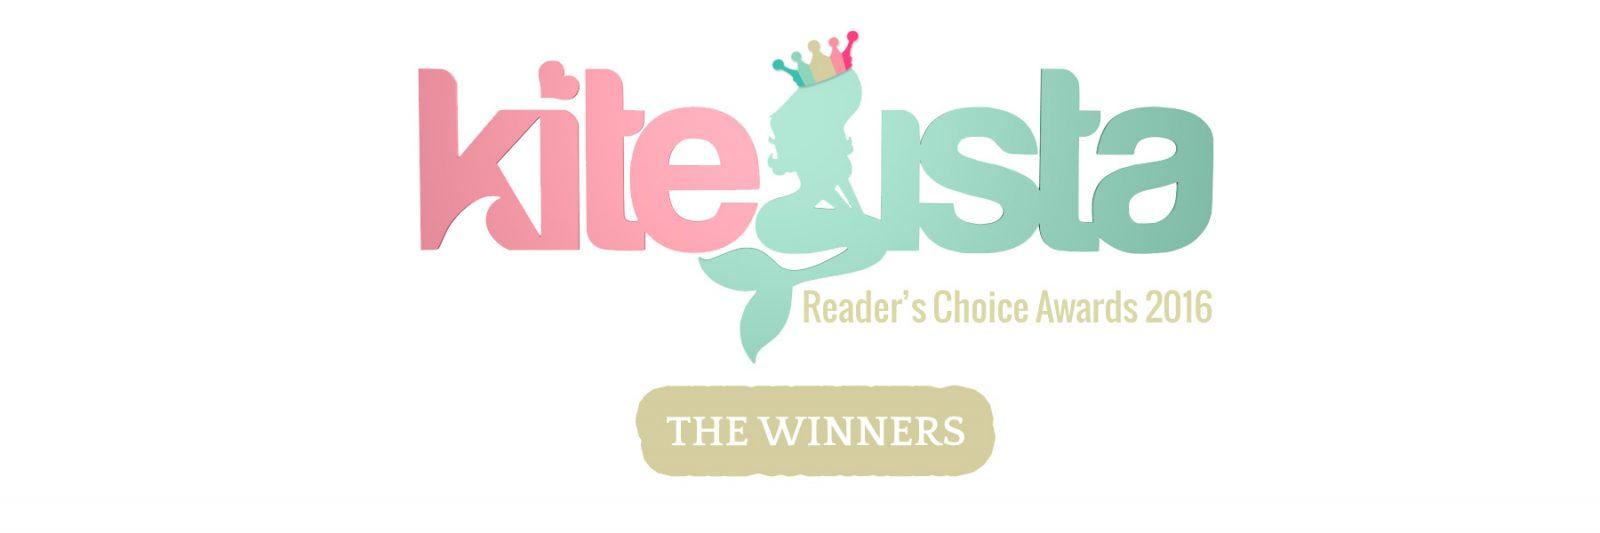 2016 Reader's Choice Awards – The Winners